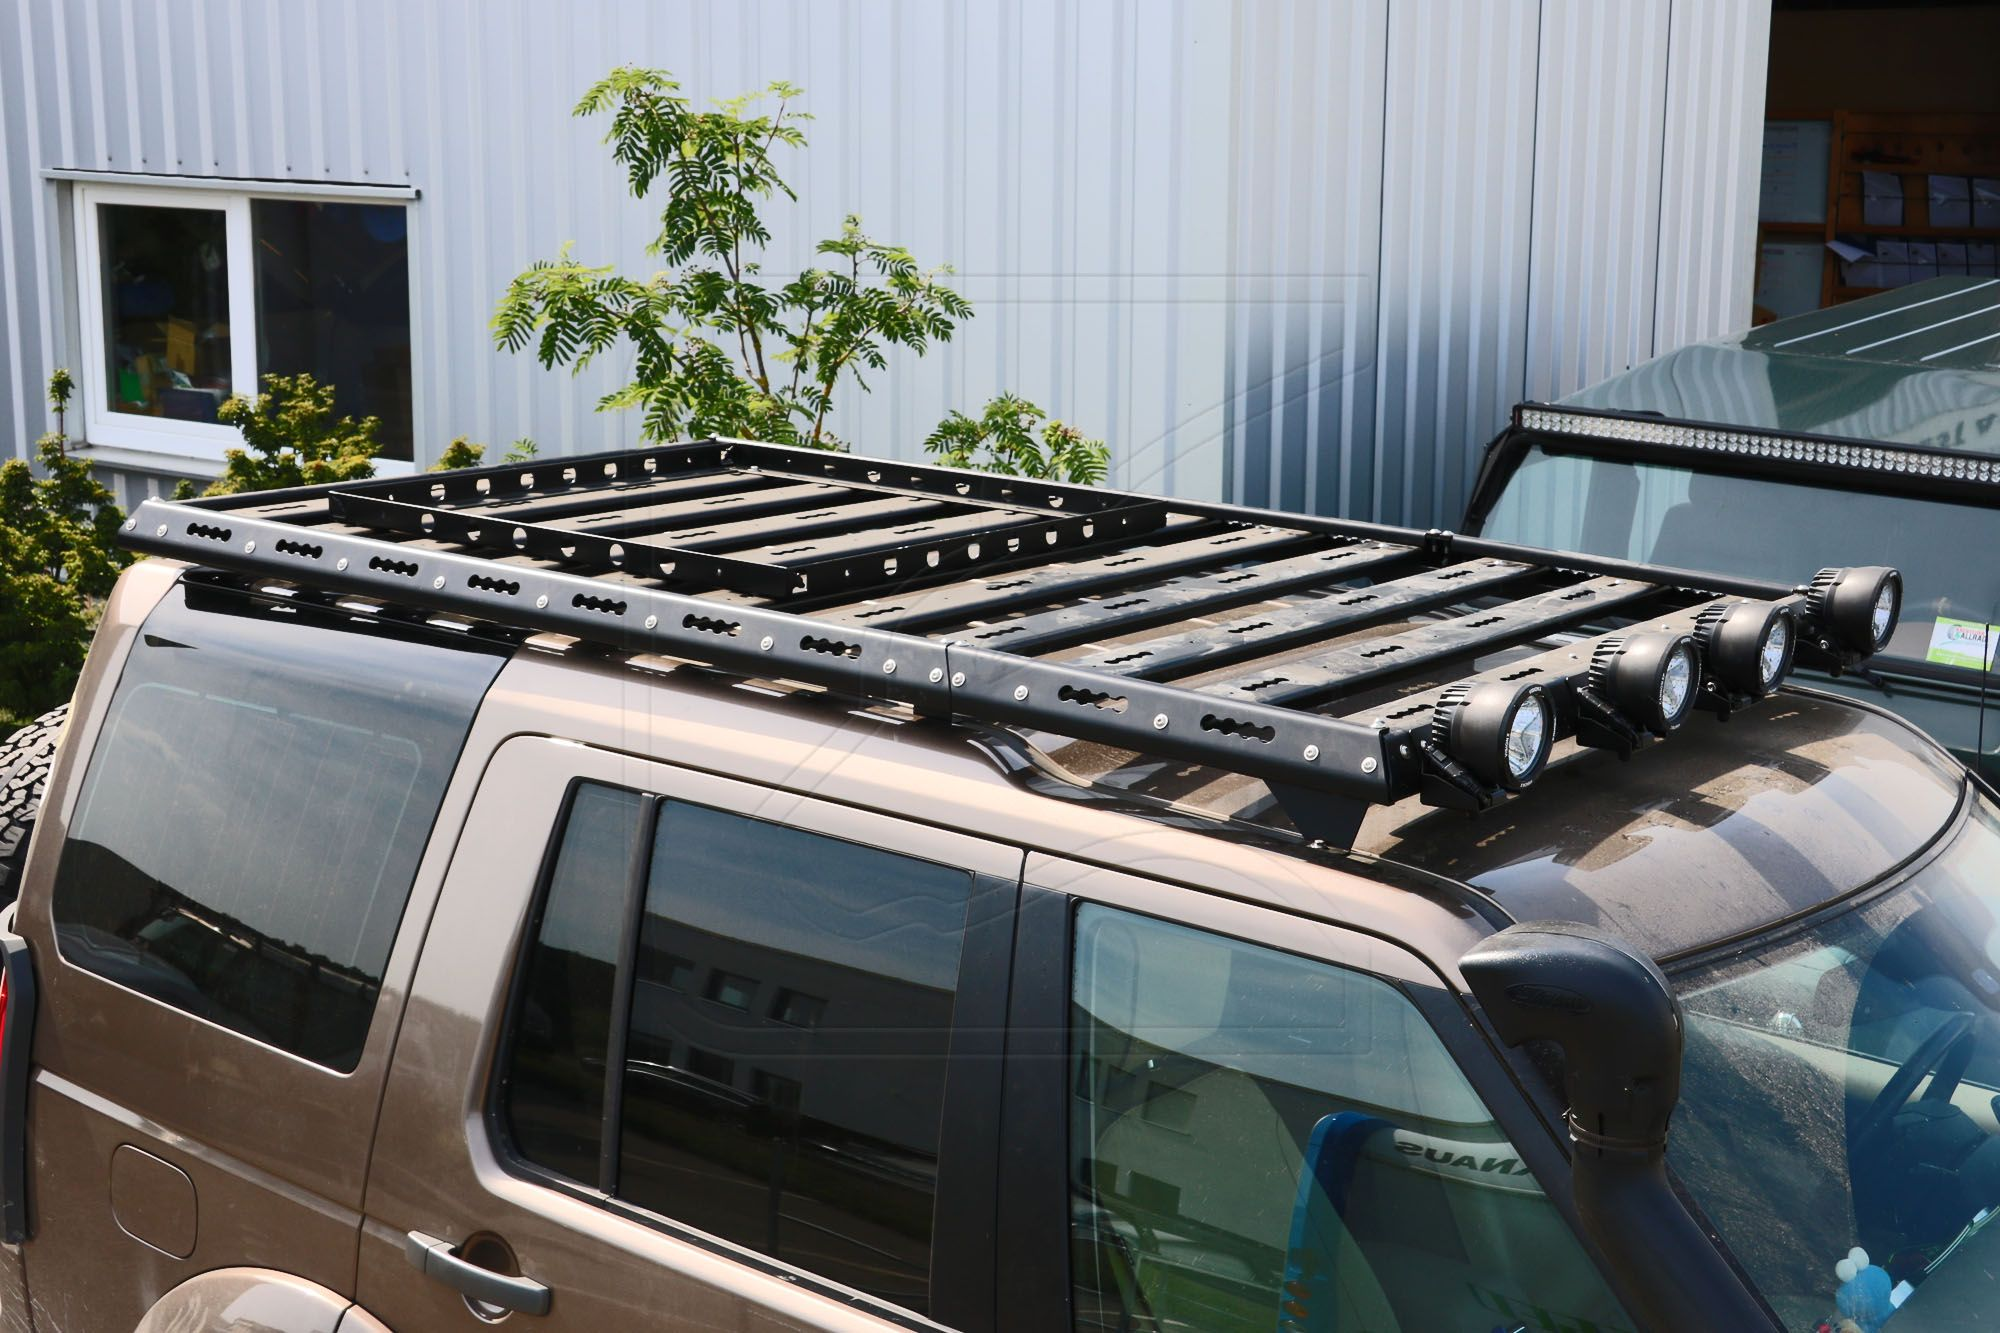 Cargobear Roof Rack System For Land Rover Discovery 3 4 Nakatanenga 4x4 Equipment For Land Rover Offroad Outdo In 2020 Land Rover Discovery Roof Rack Land Rover